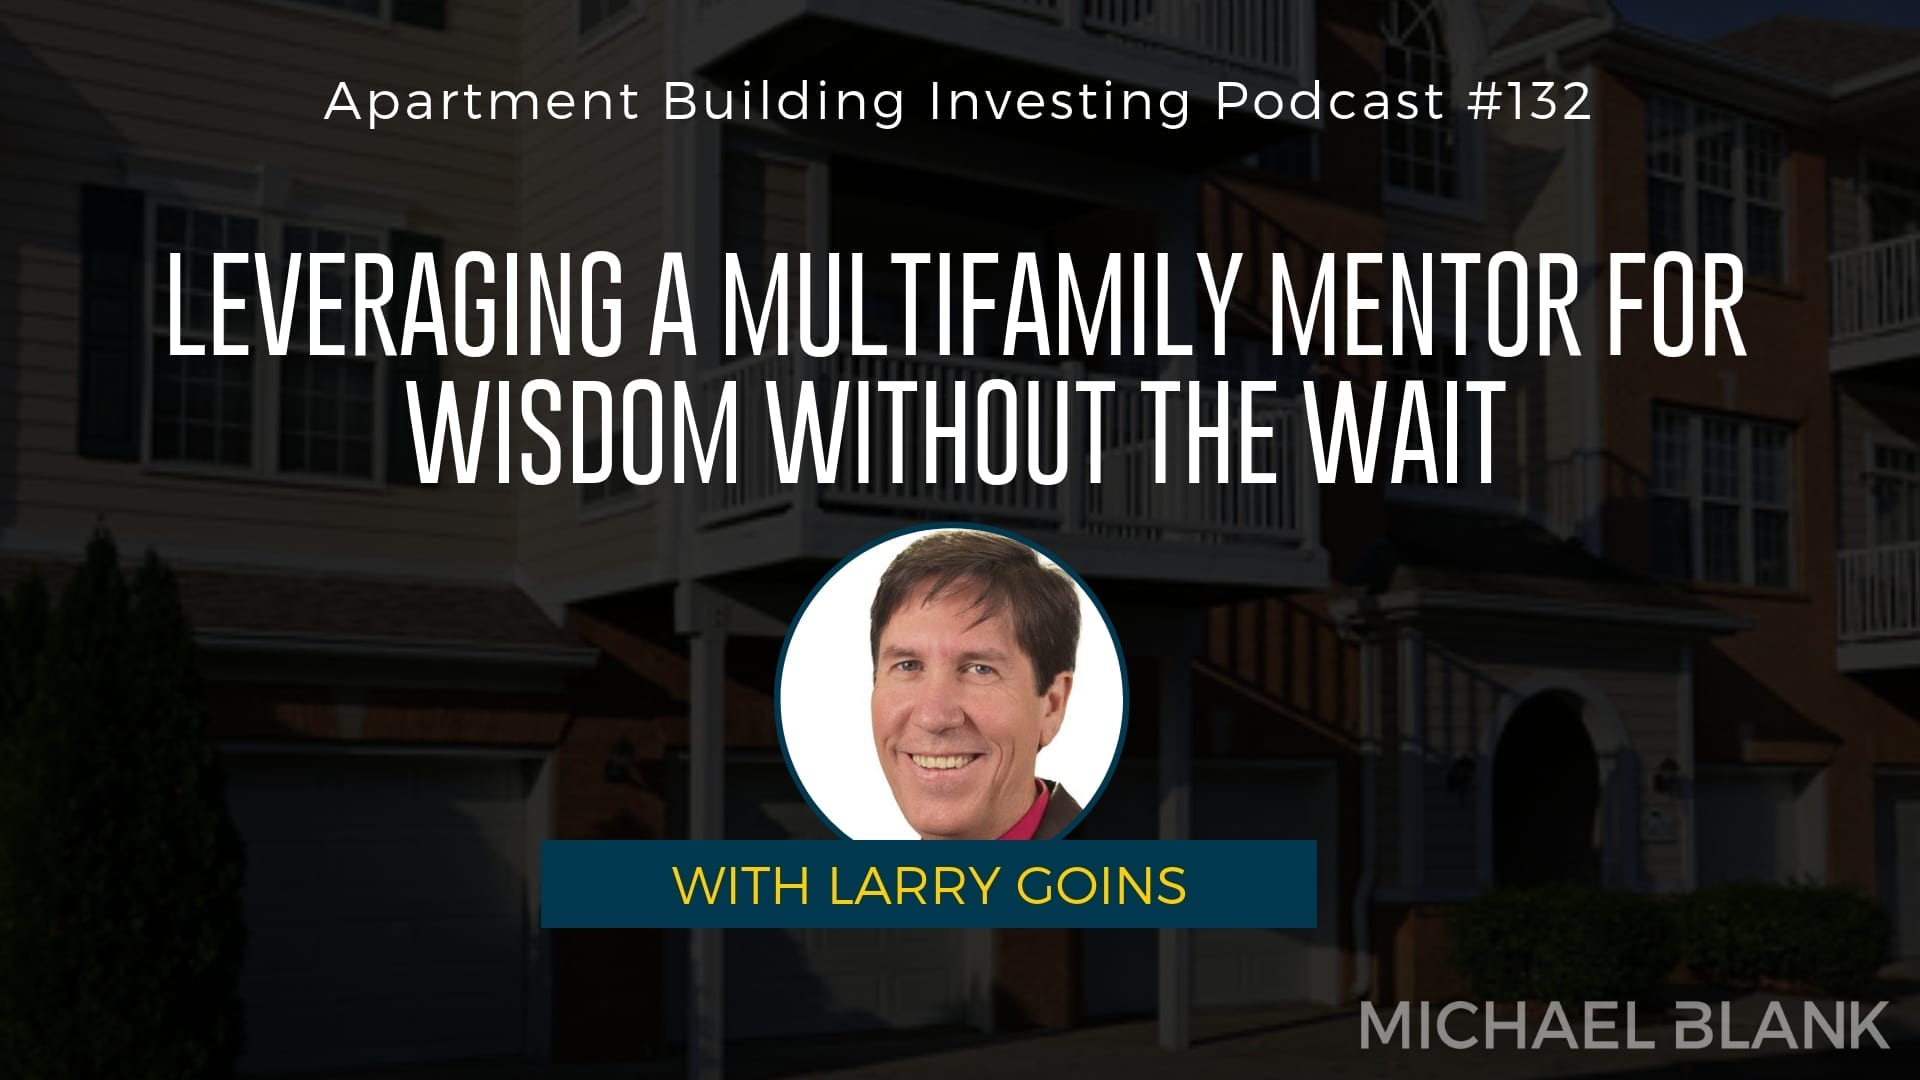 MB 132: Leveraging a Multifamily Mentor for Wisdom Without the Wait – With Larry Goins